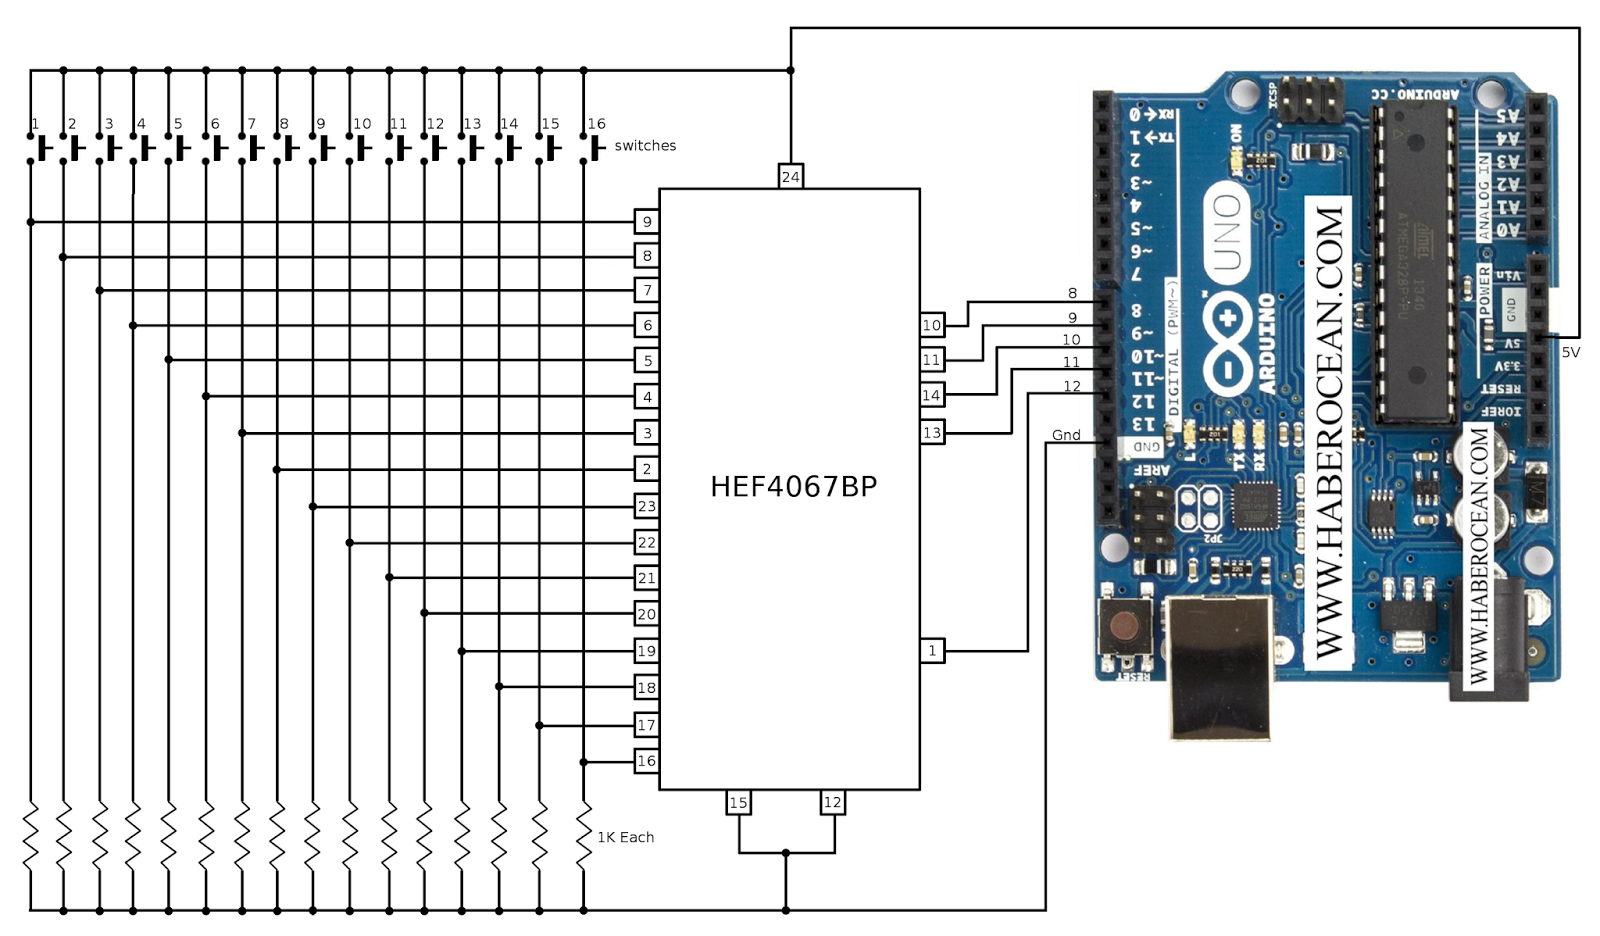 Interface switches to arduino uno using only digital